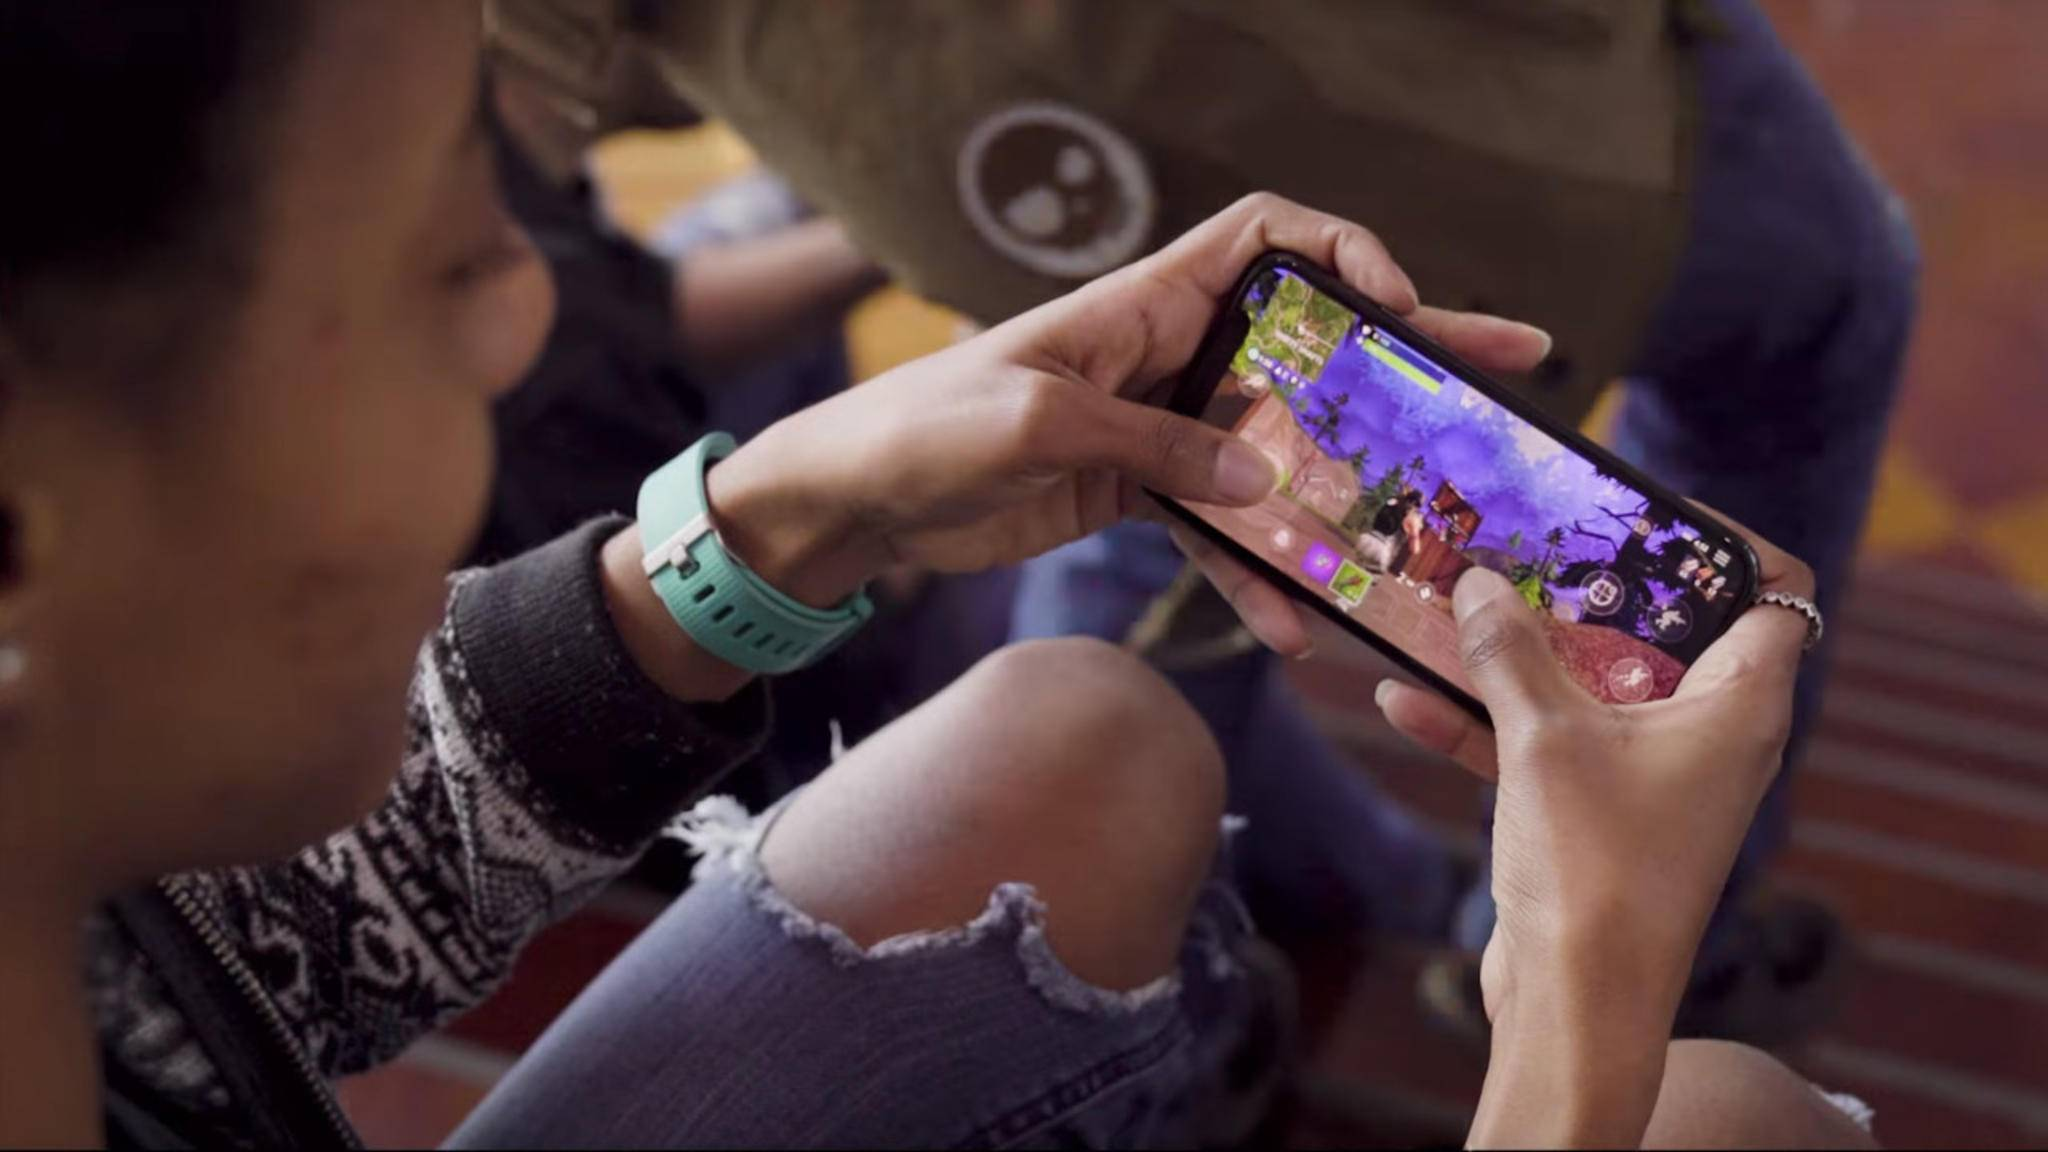 Fortnite Fur Android Wann Kommt Der Mobile Release Im Play Store